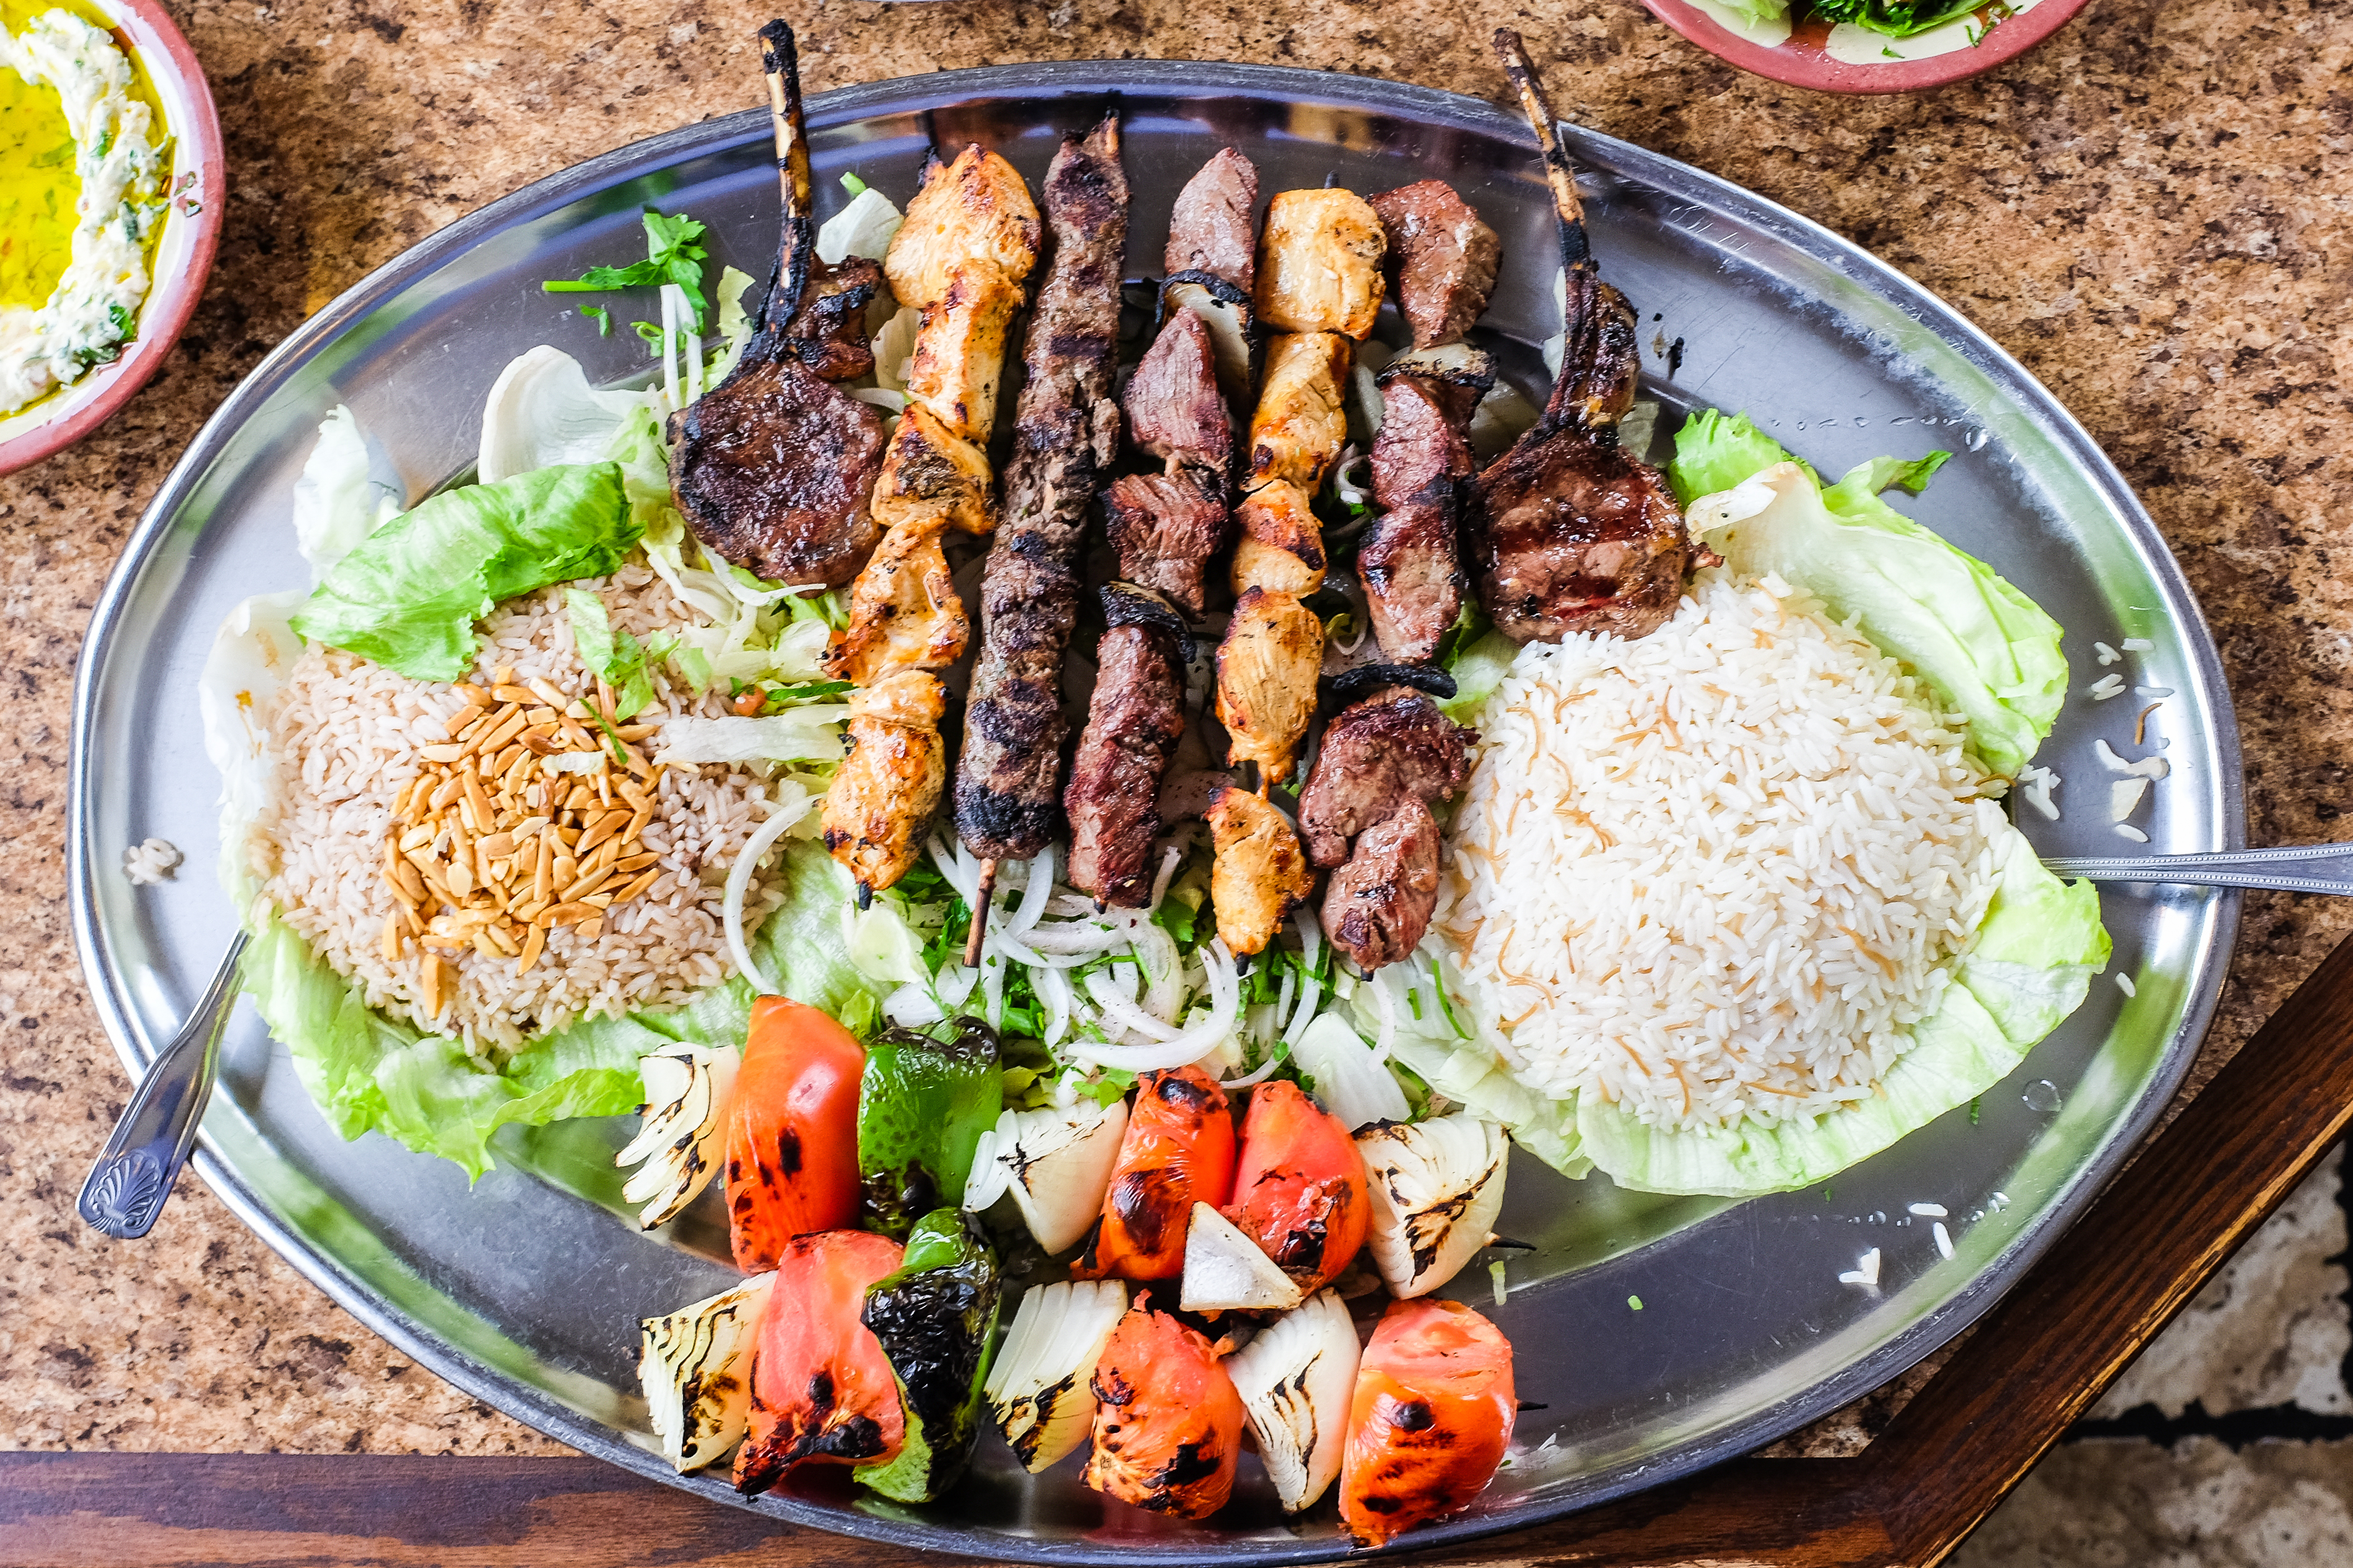 The 12 most utterly gorgeous plates of food bill addison for Anissa helou lebanese cuisine